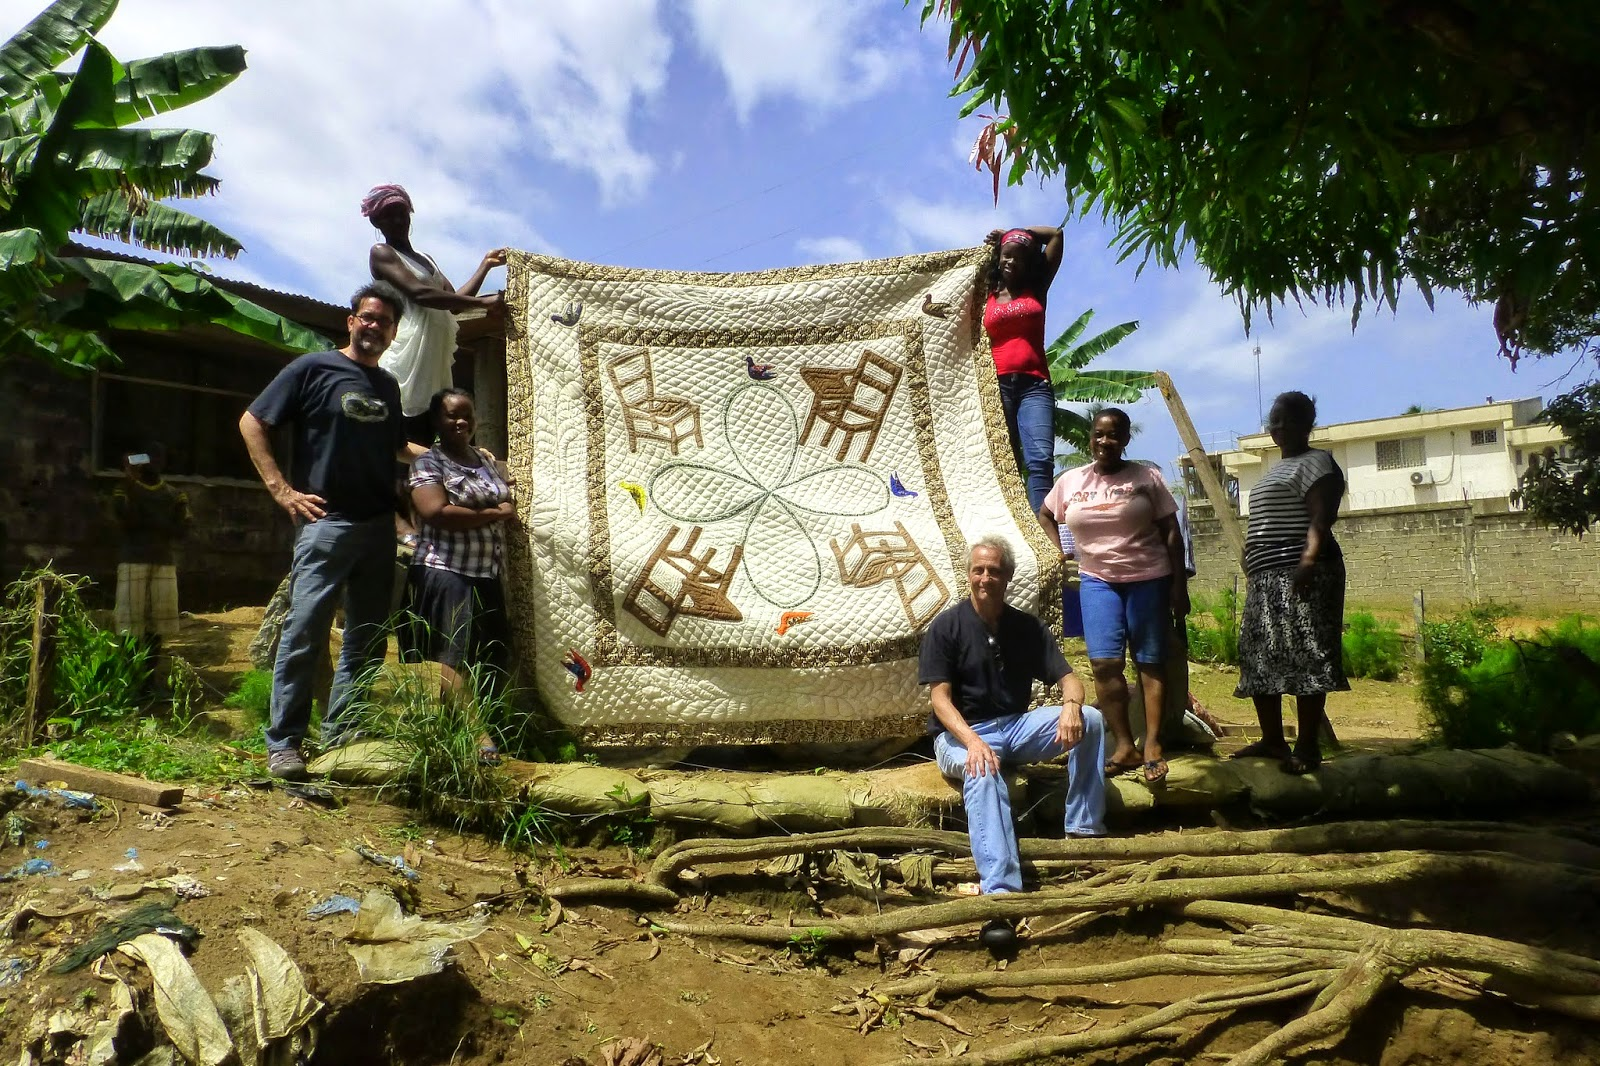 In Monrovia, in collaboration with the Quilters Guilds, Waste Not Inc., Alice Bracewell (Sinkor), Quageh, Maude Davis (Caldwell), and team of young women created a visual document of Story in an edition of Quilts.